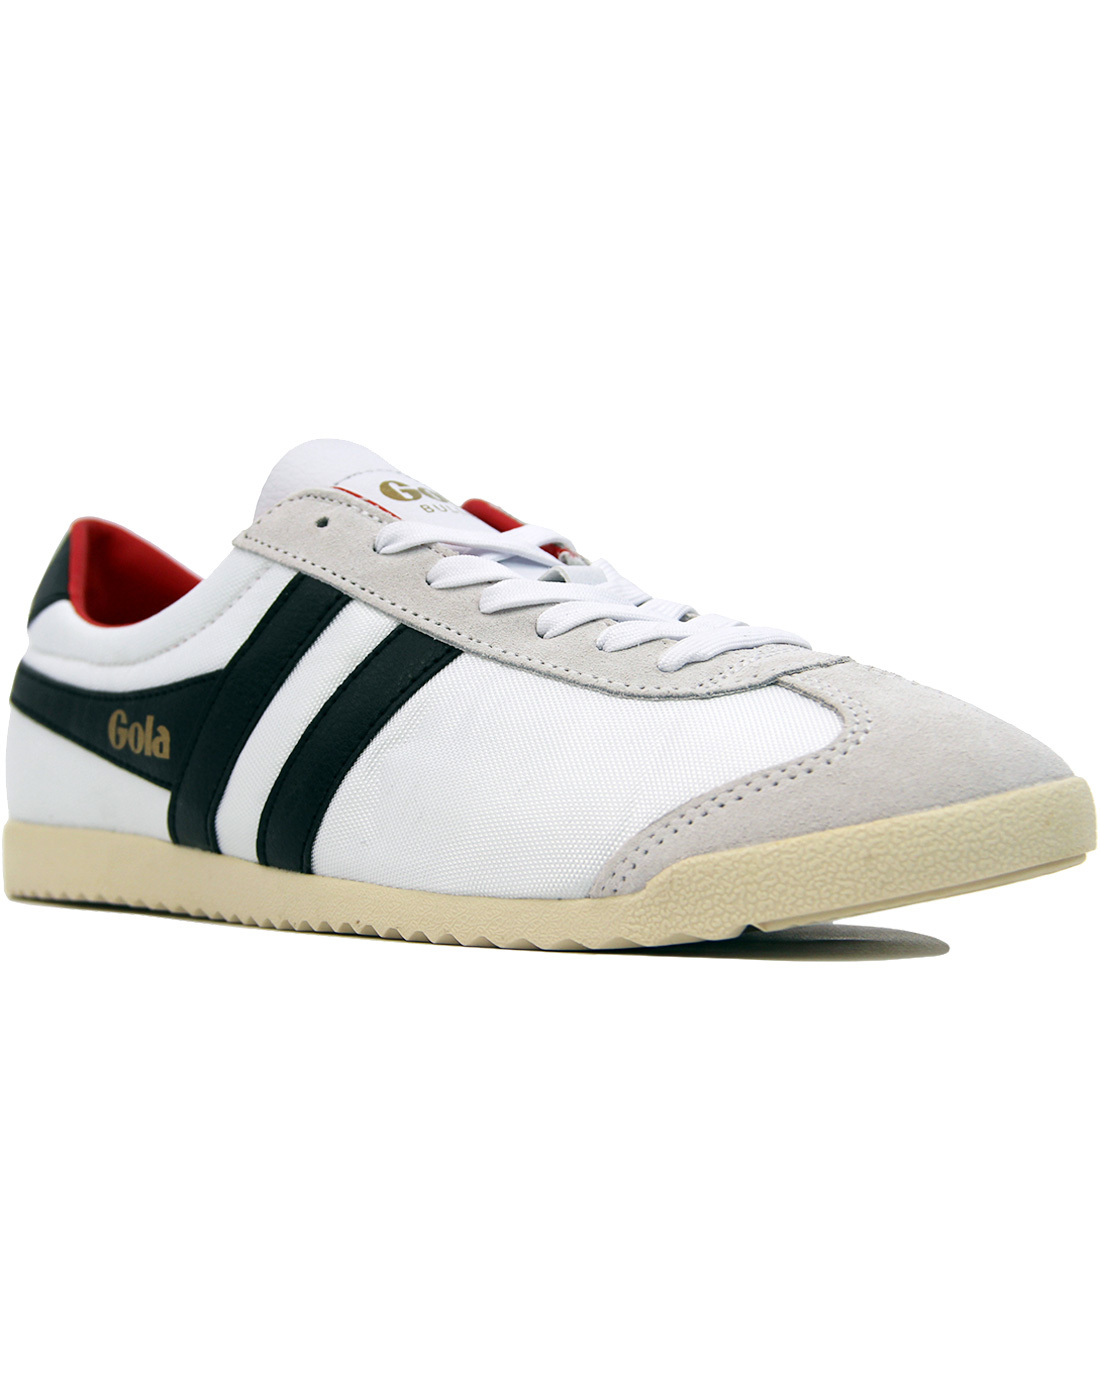 GOLA Bullet Nylon Mens Retro 70s Trainers WHITE